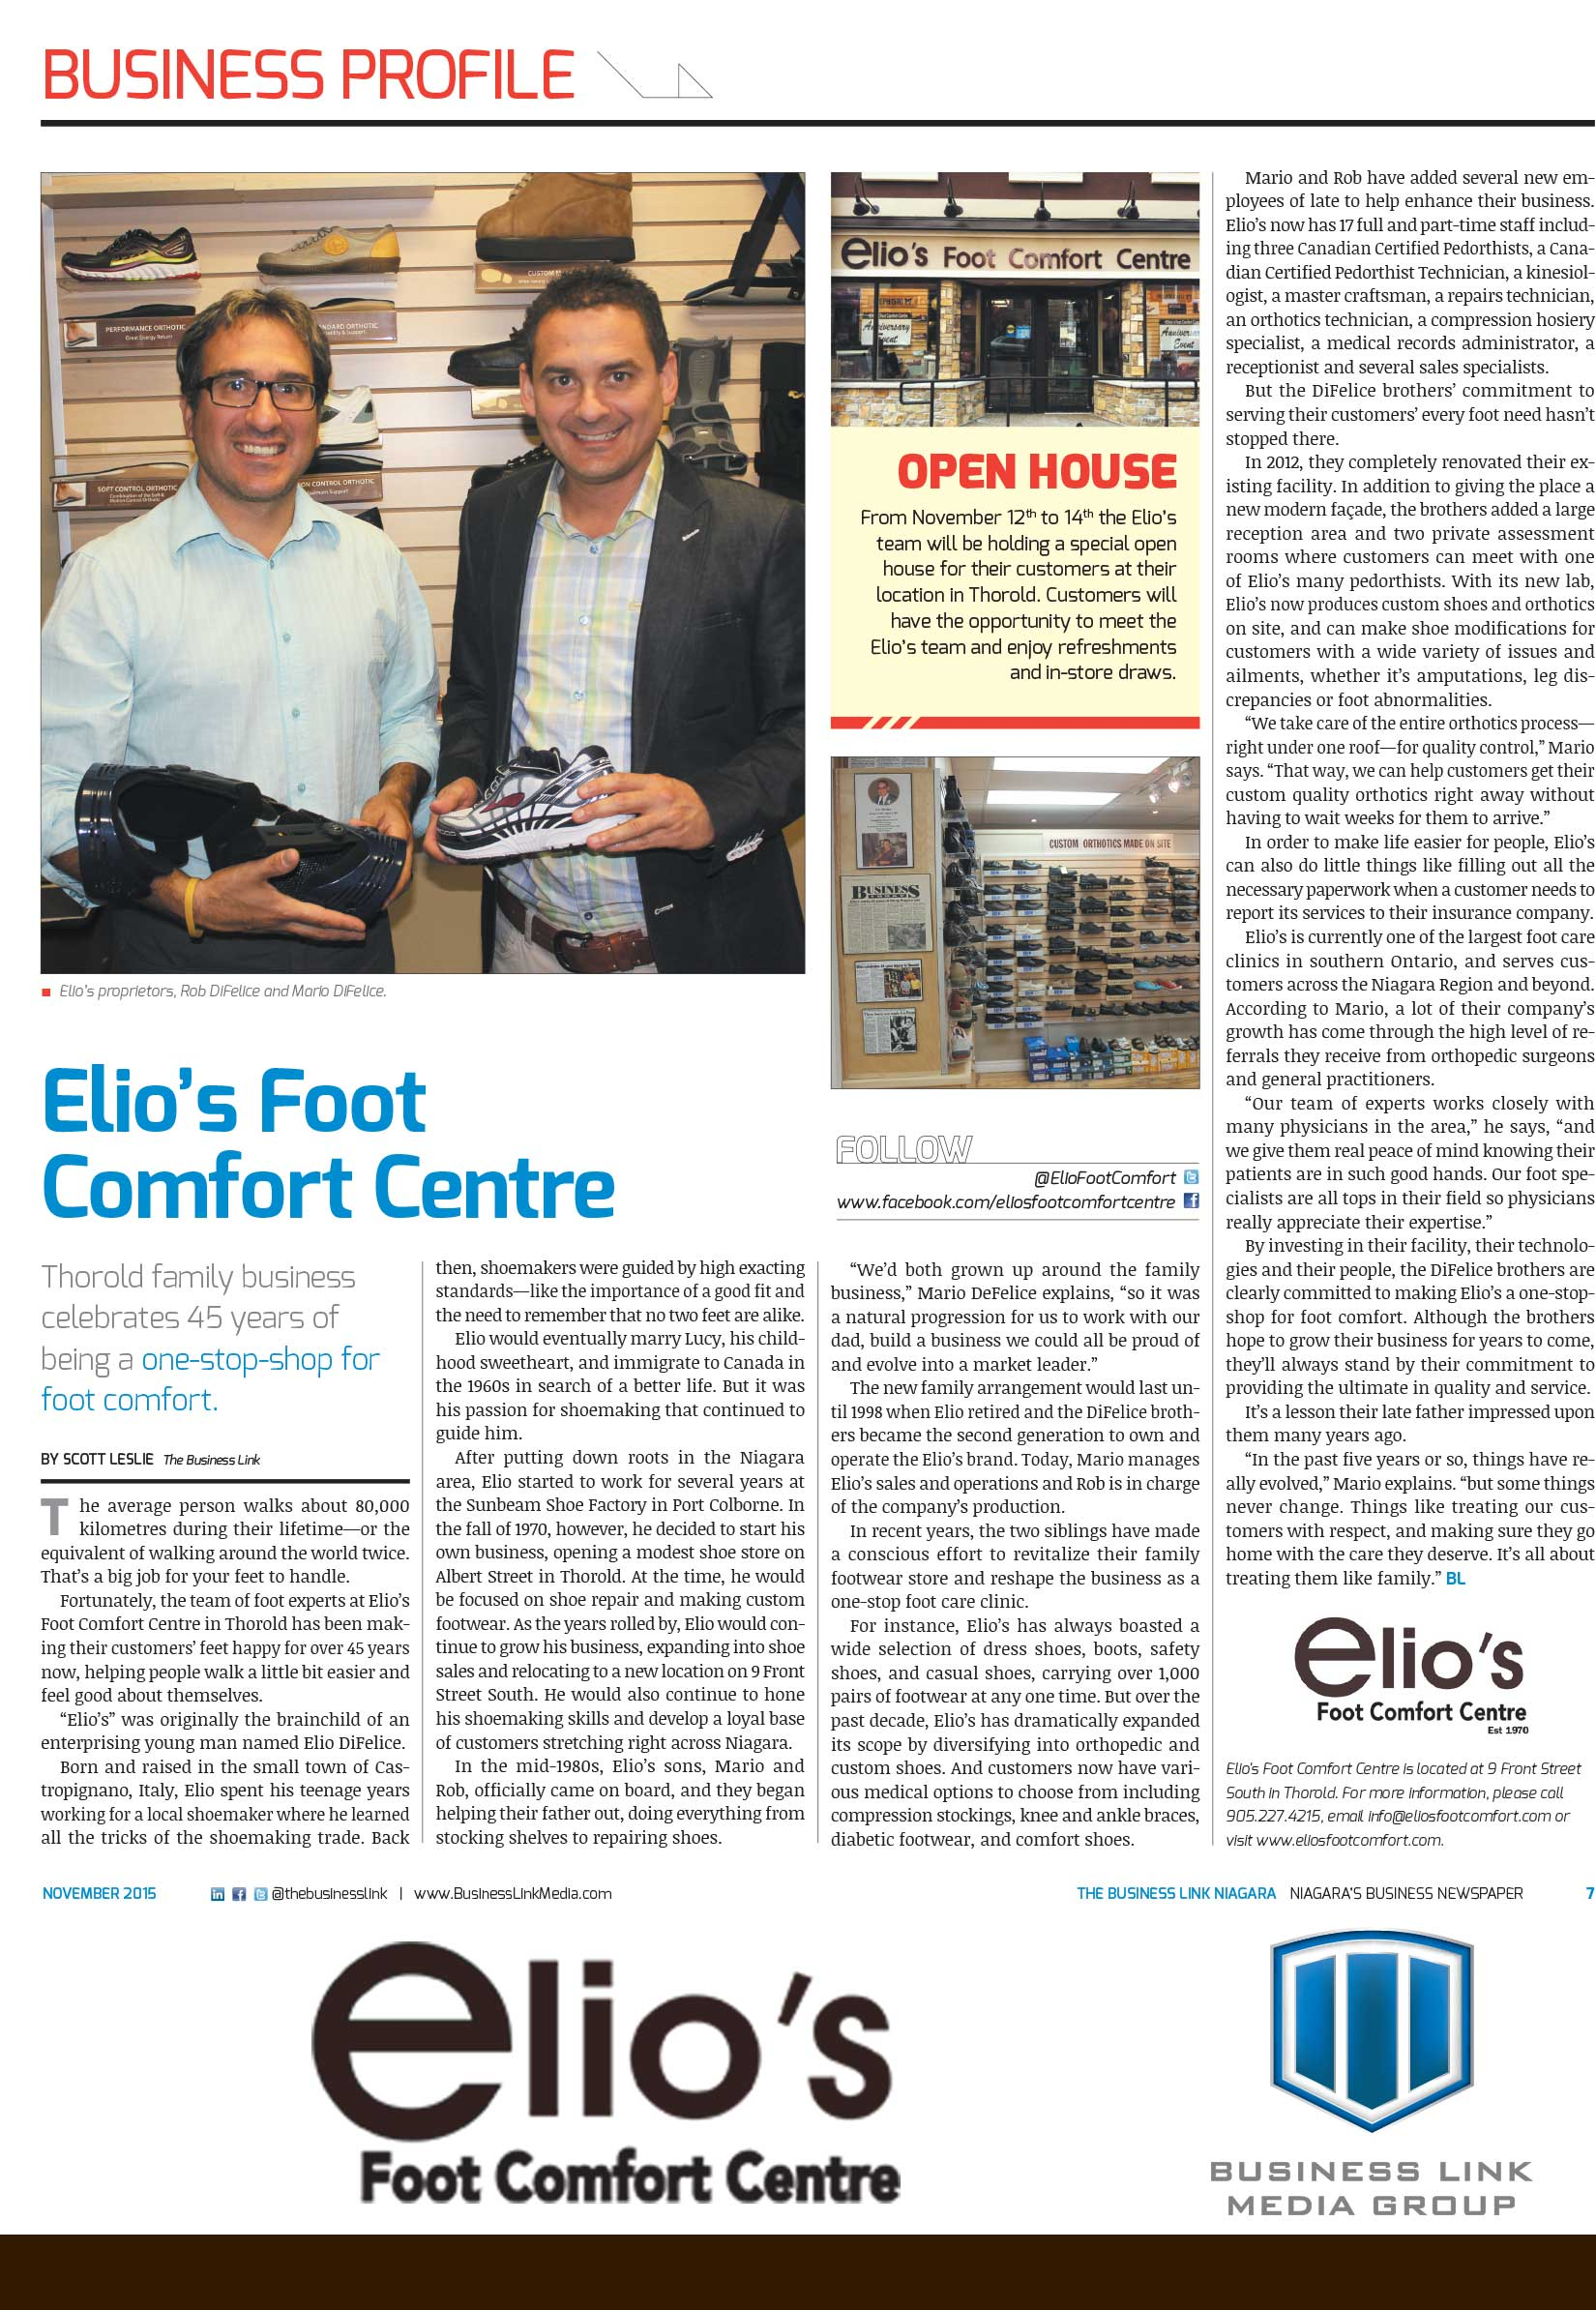 Elio's Business Profile in the Business Link Newspaper